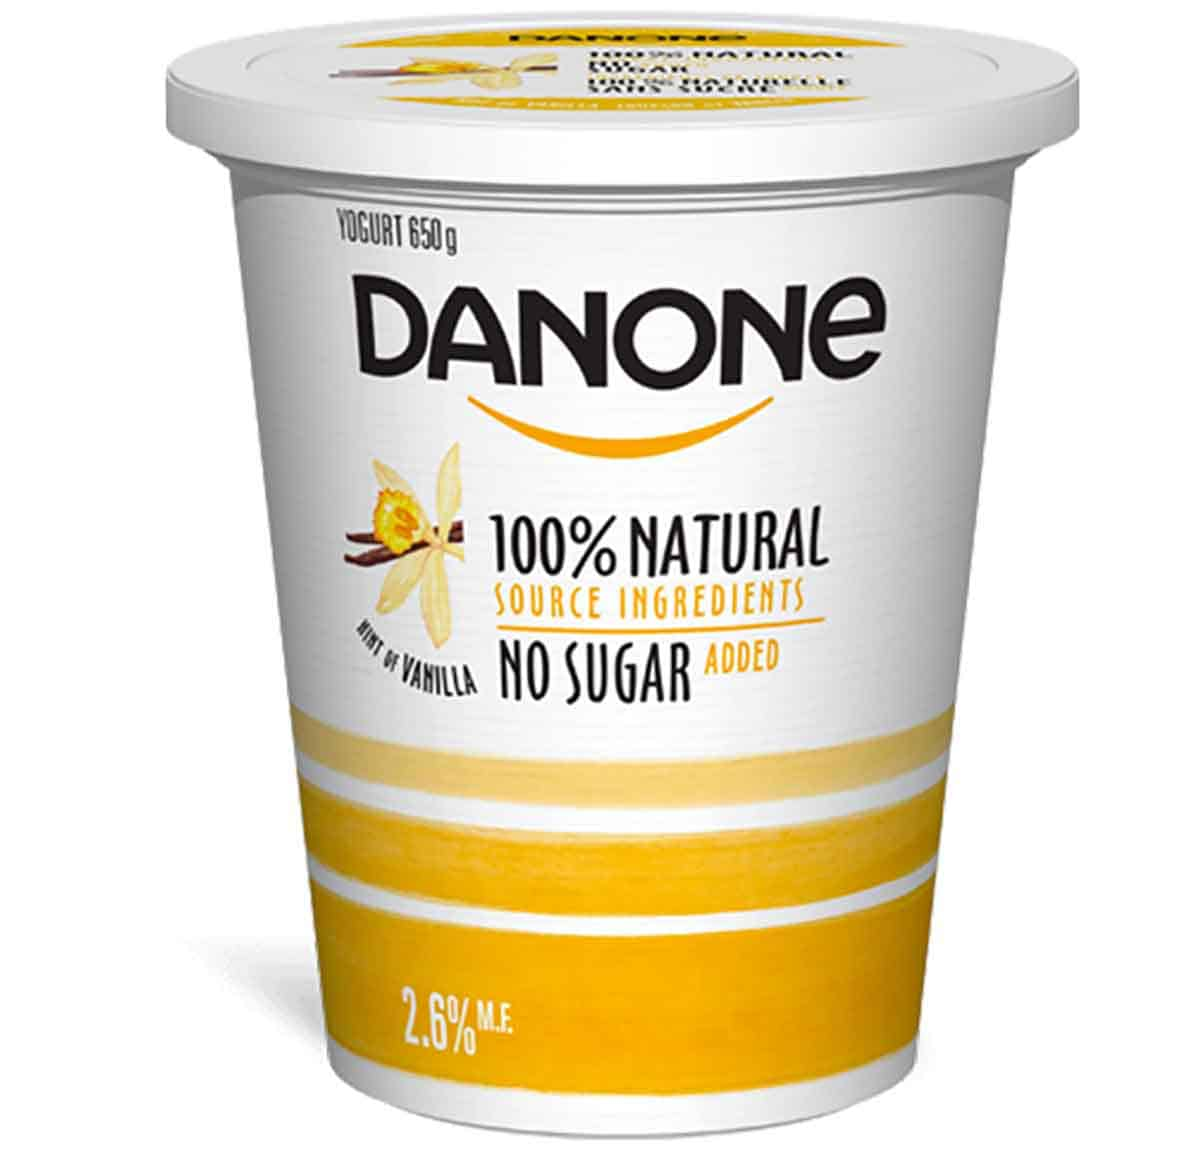 A container of danone yogurt with no added sugar.